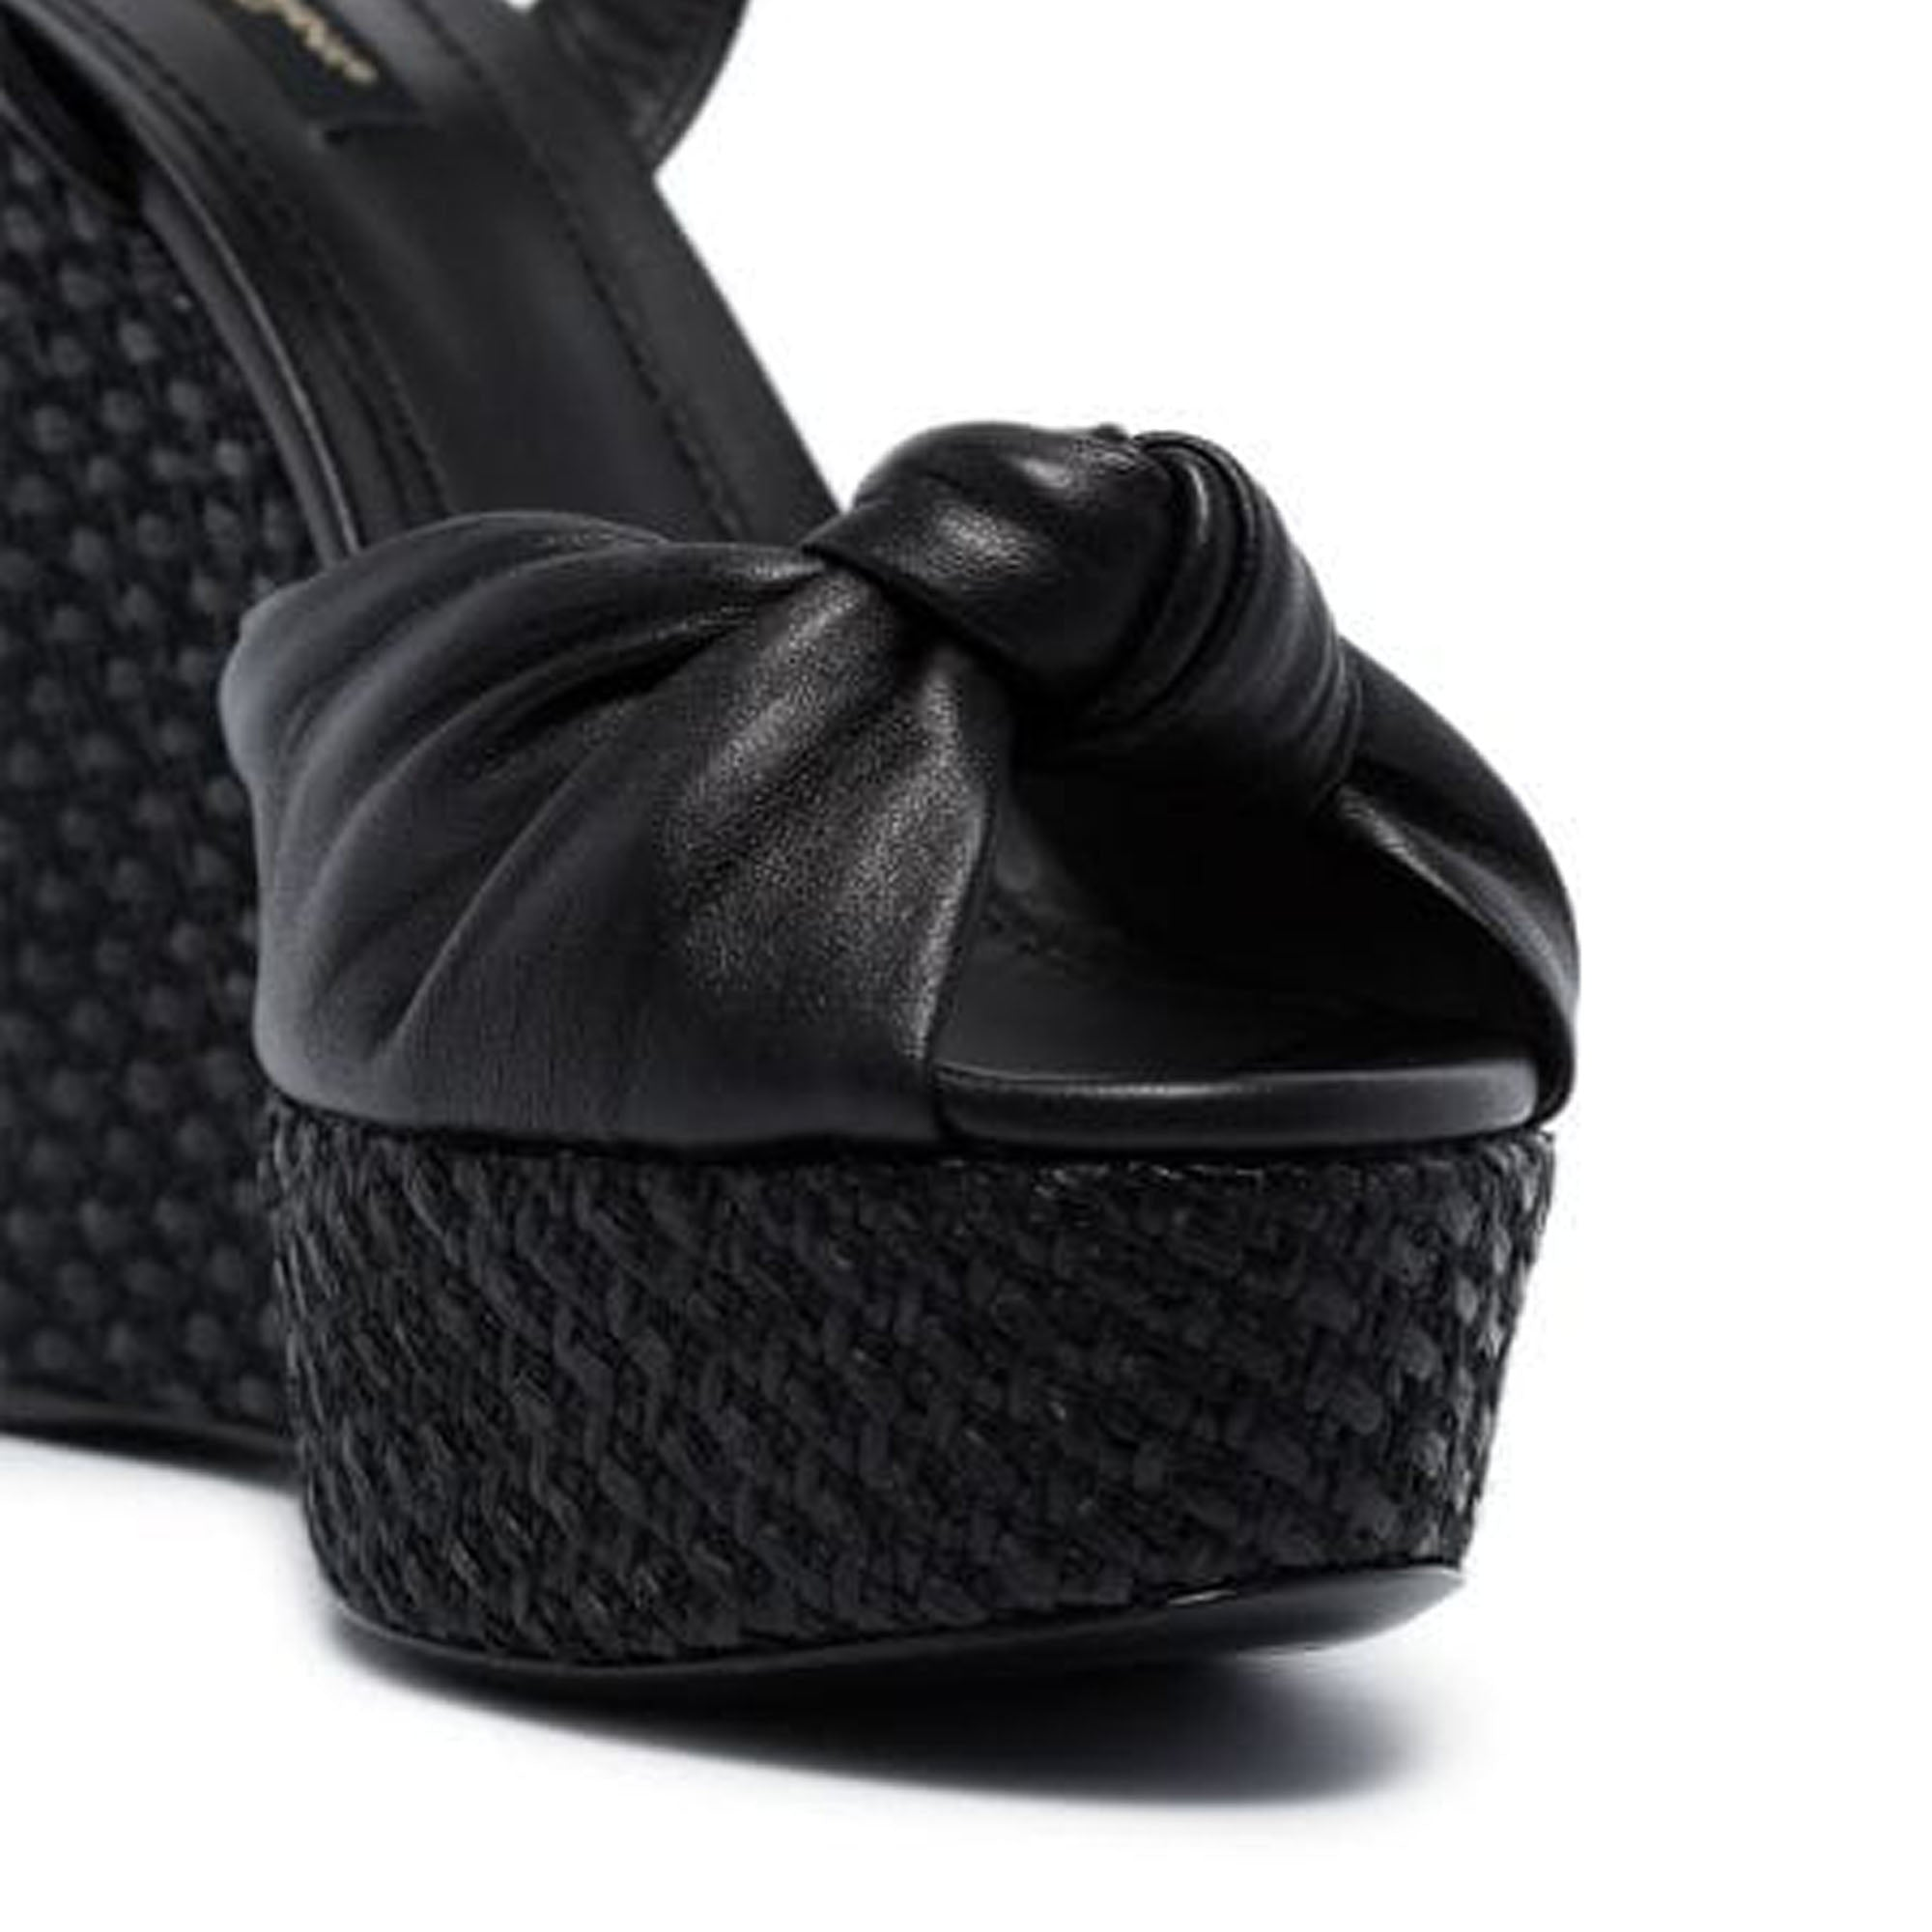 Dolce&Gabbana Black Leather Knot Wedge